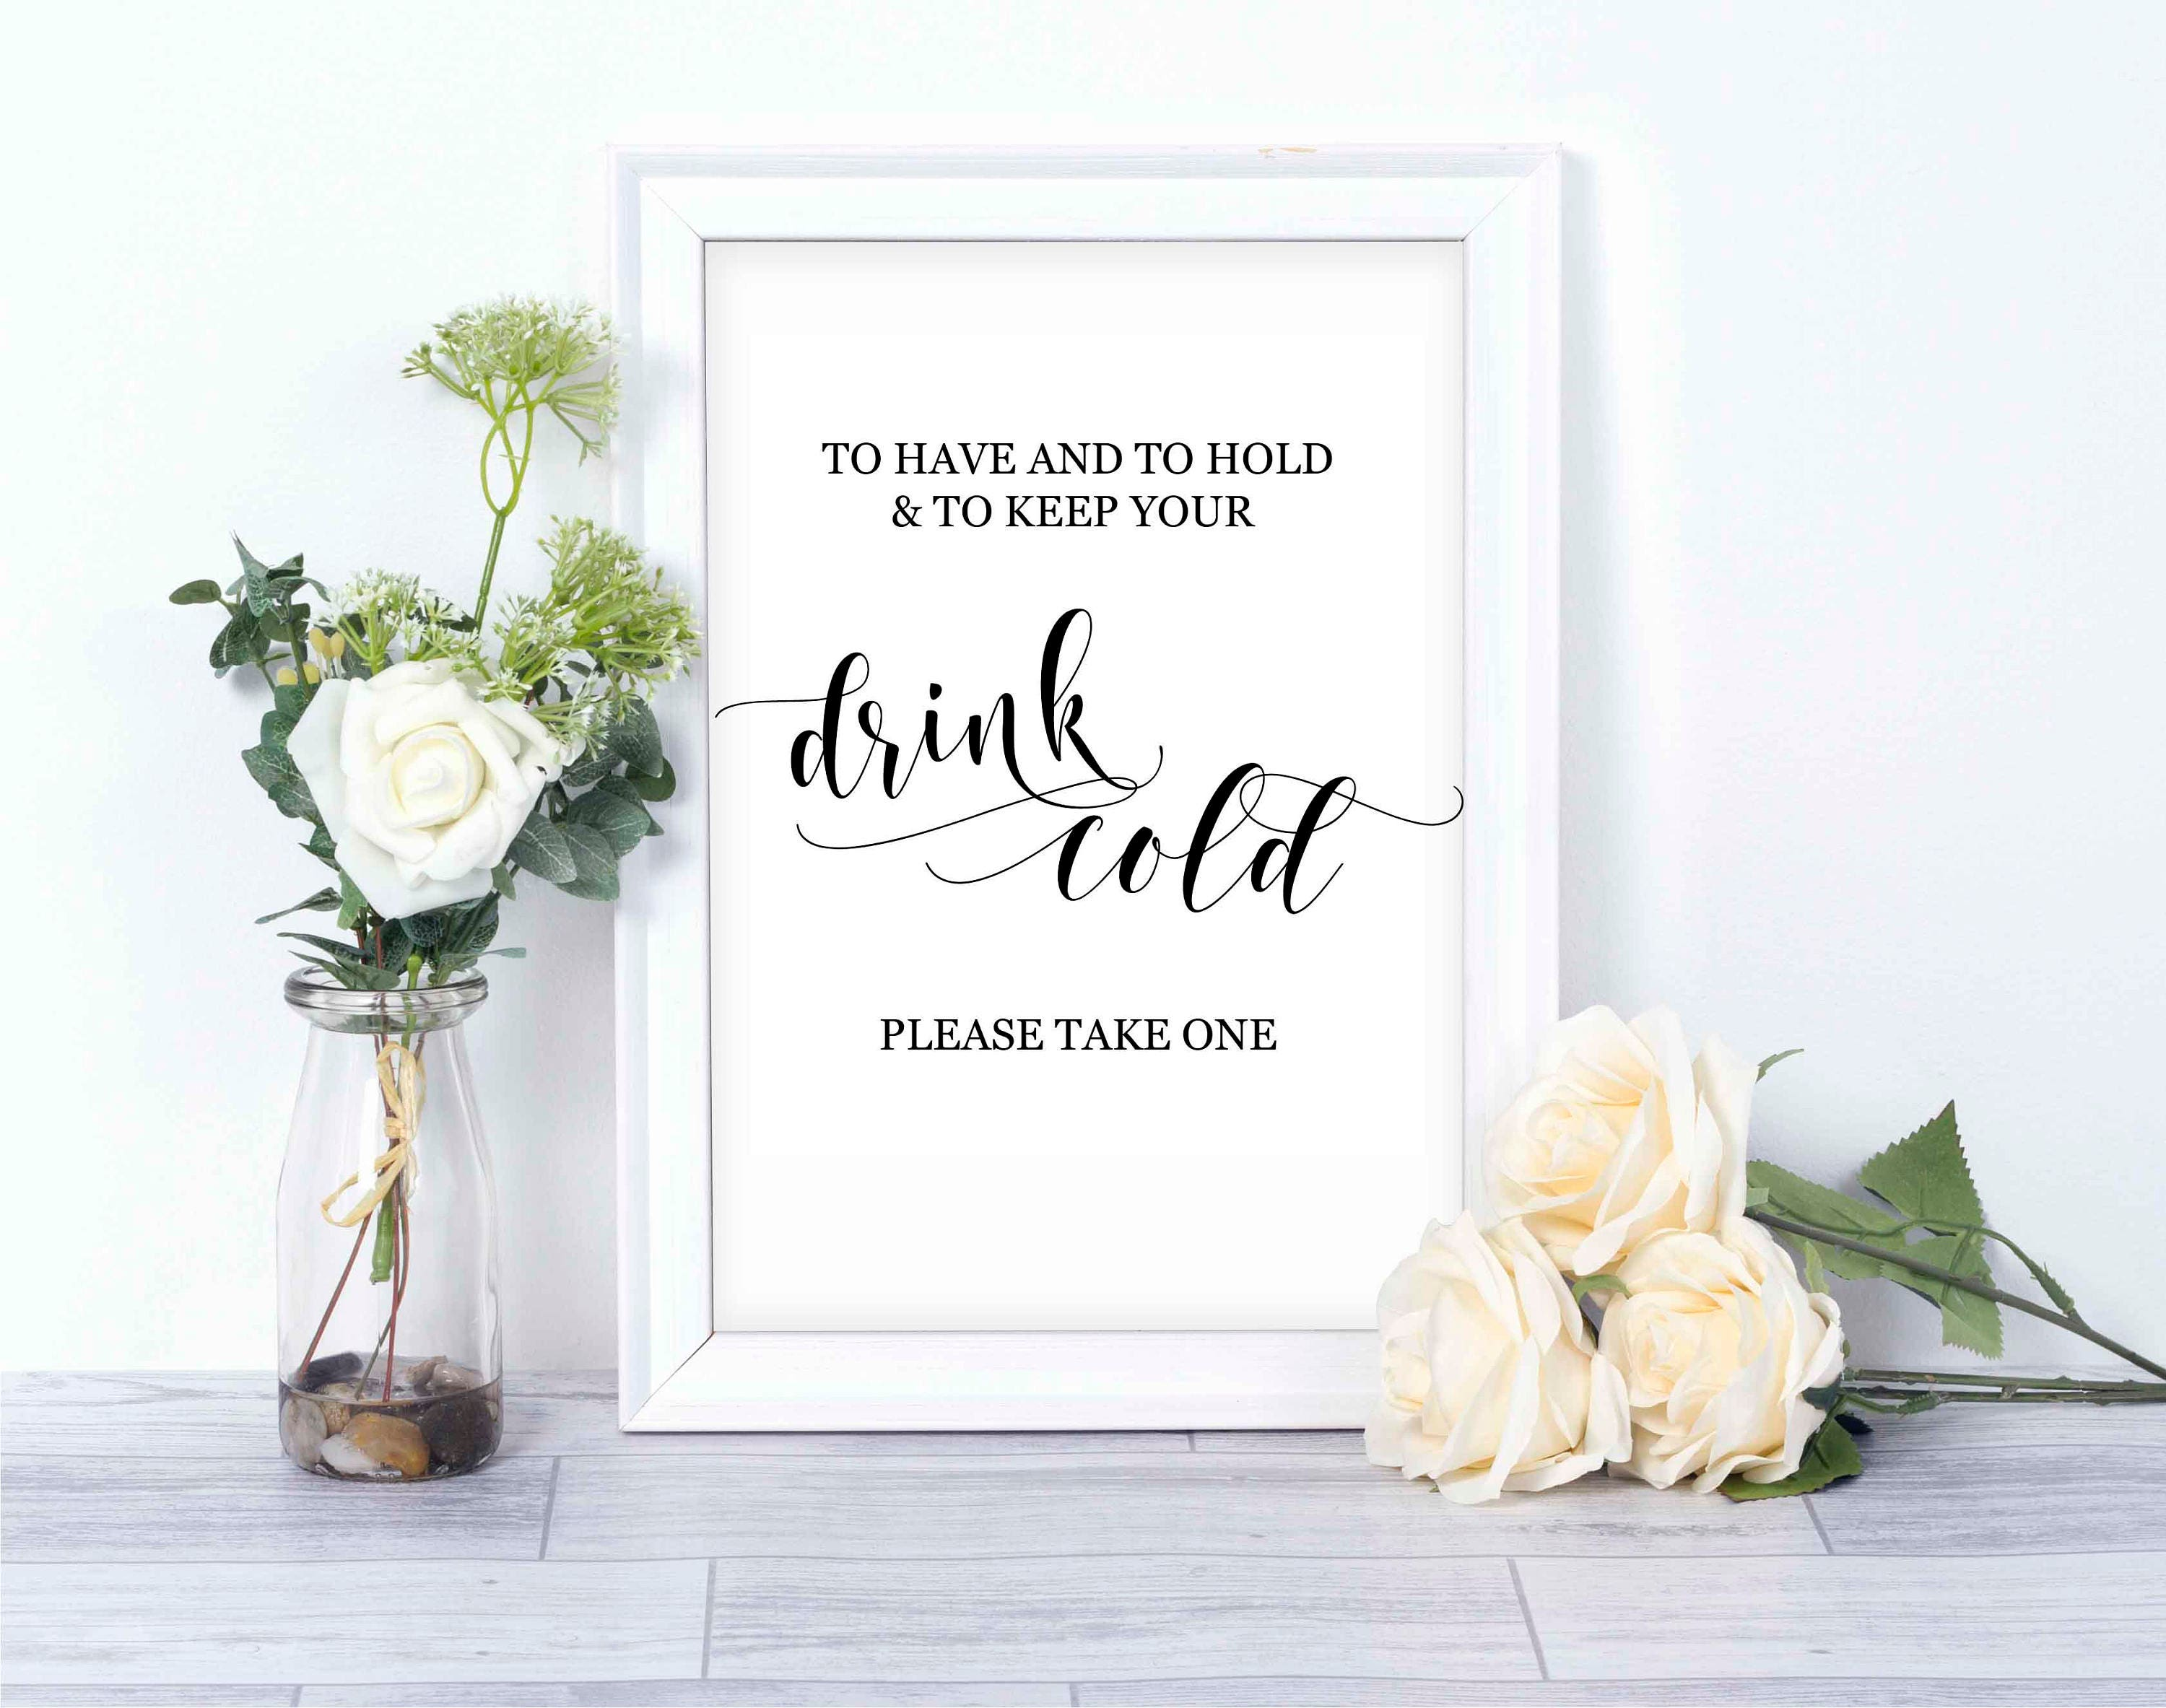 To have and to hold and to keep your drink cold wedding